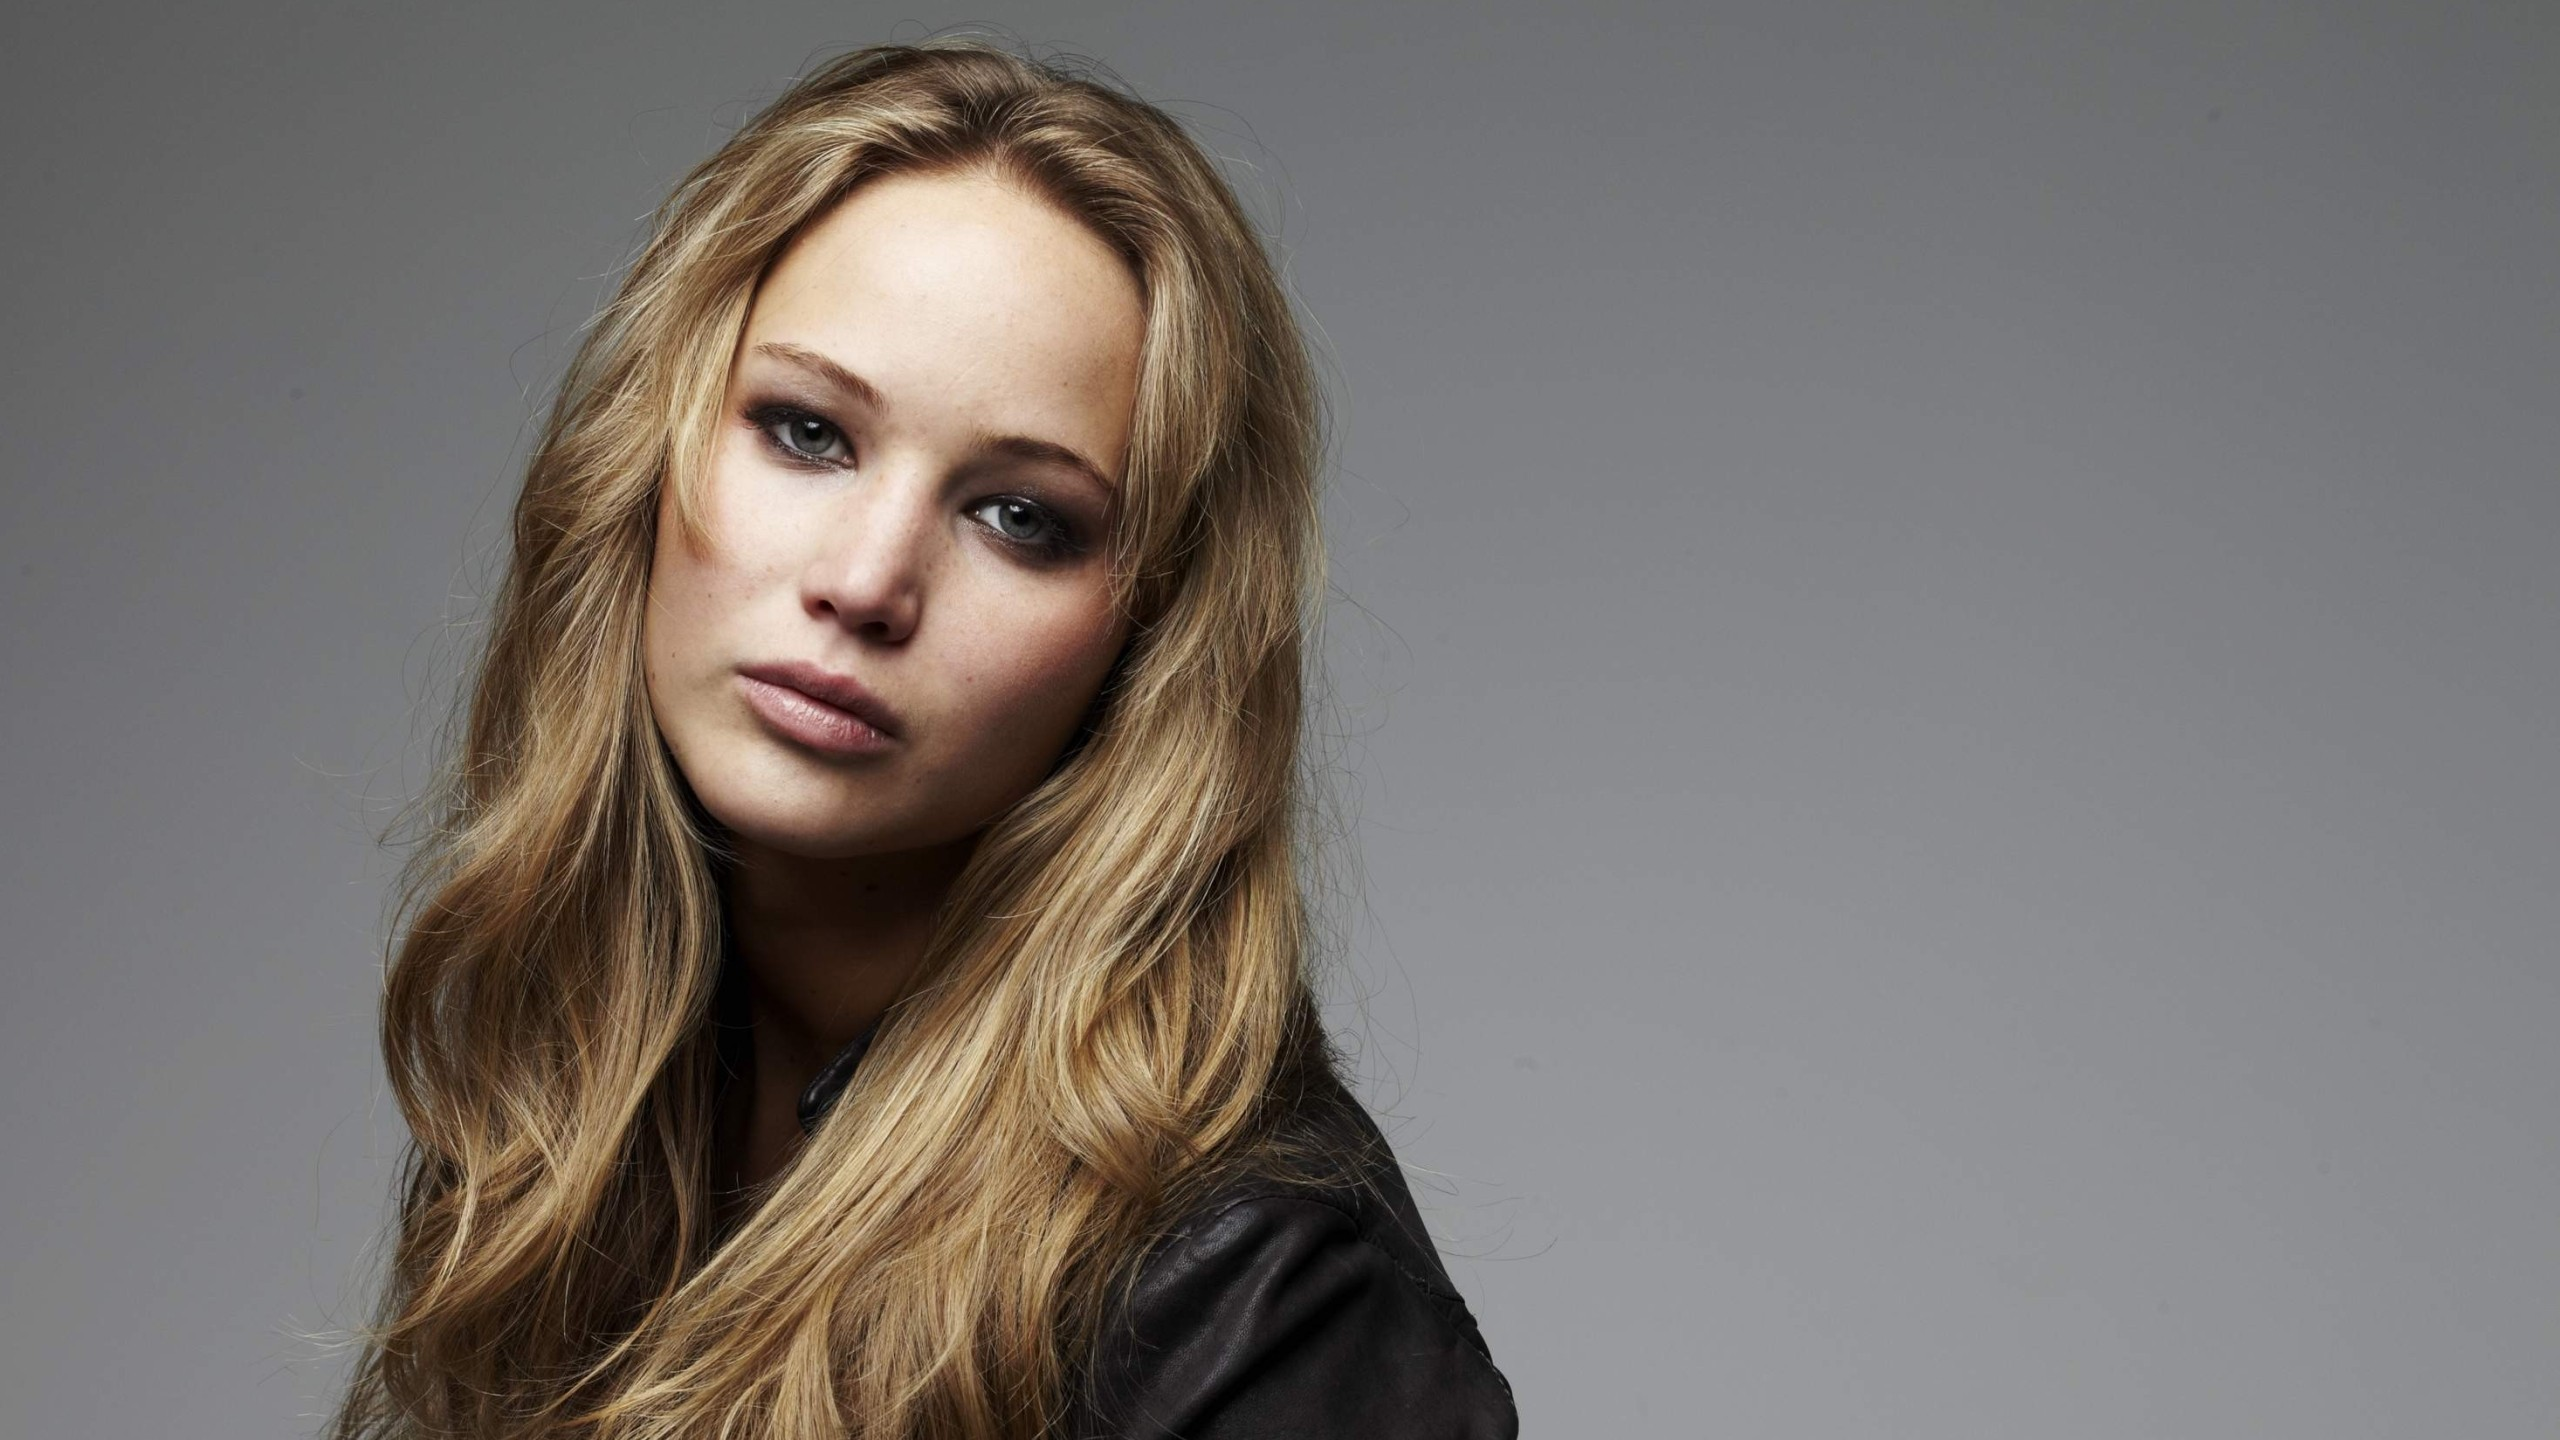 Jennifer Lawrence Blonde Hair Wallpapers W36716